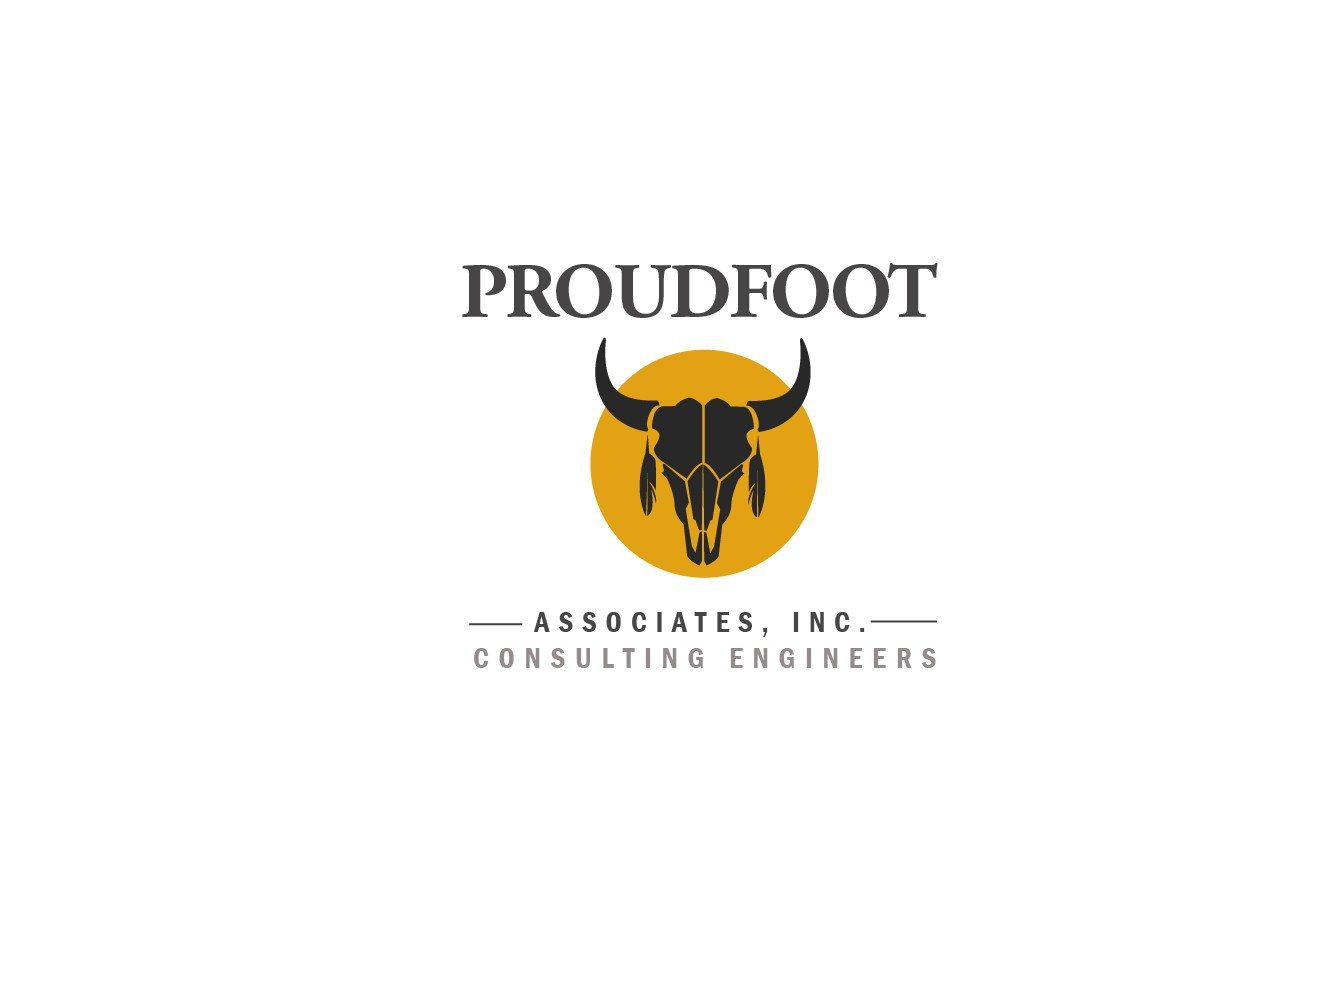 Create/Redesign a capturing logo for an Native American Civil Engineering firm